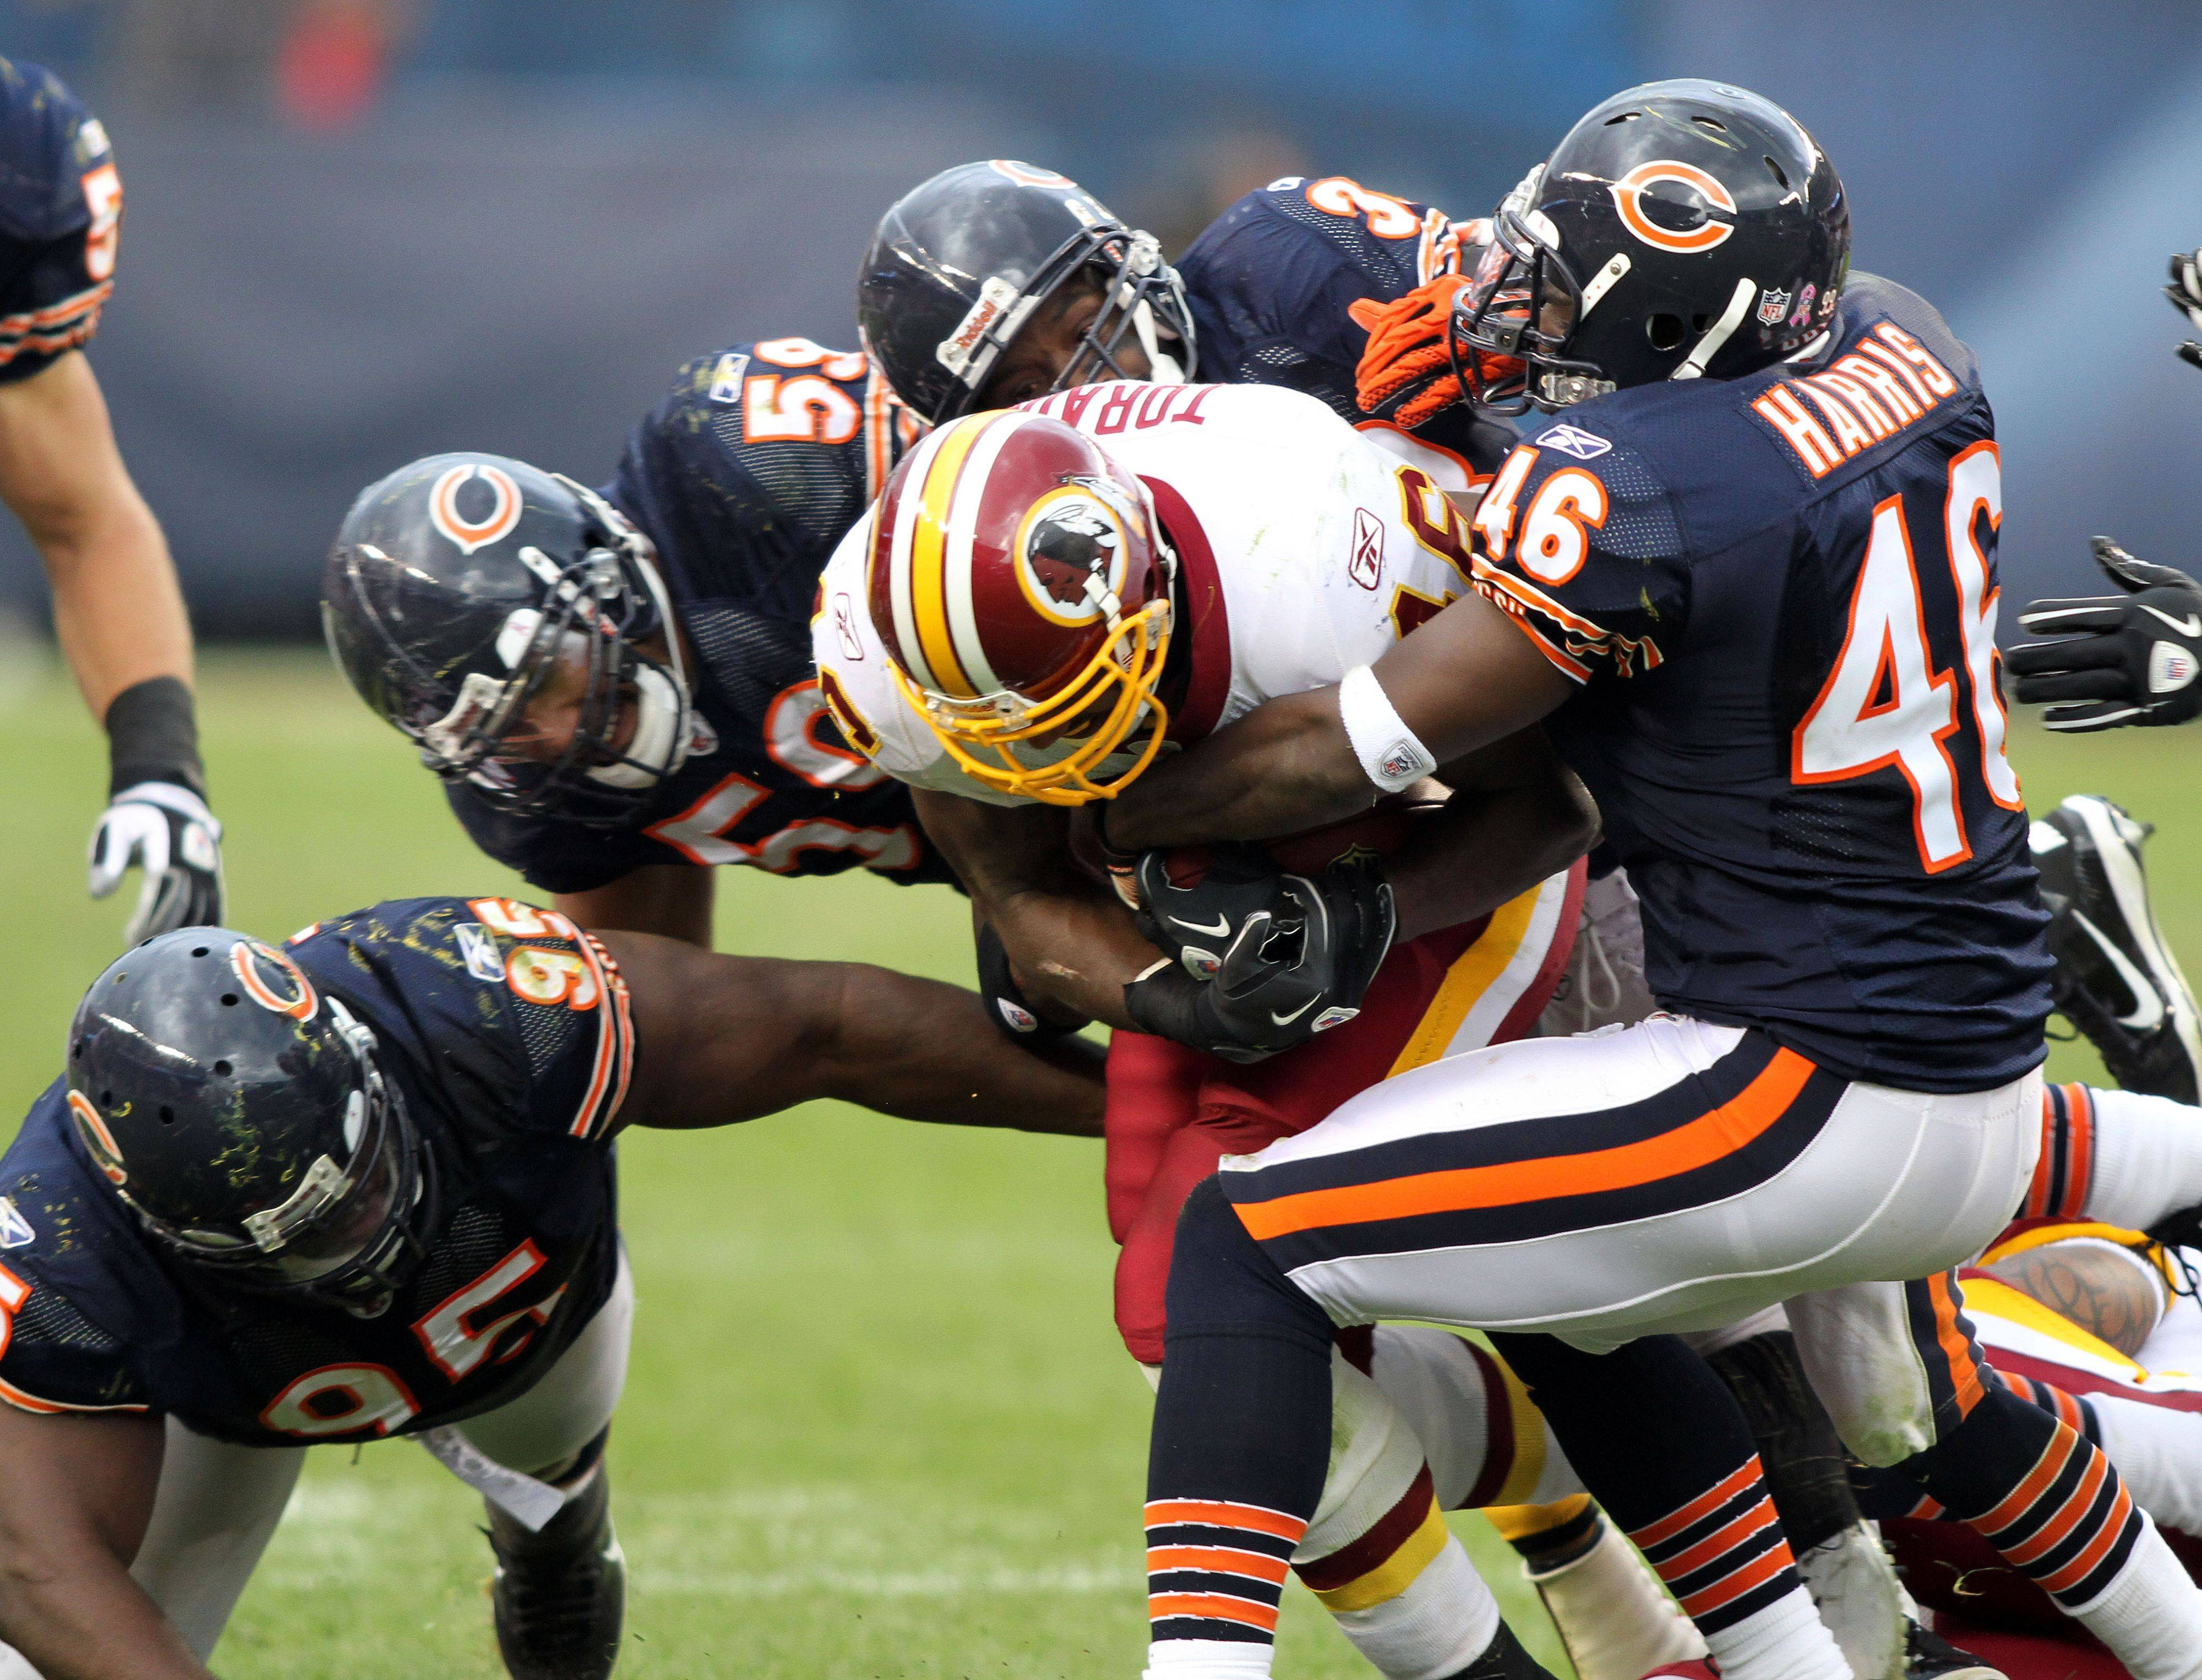 A throng of Bears take down Washington Redskins running back Ryan Torain during the Bears' 14-17 loss to the Redskins Sunday at Soldier Field in Chicago.